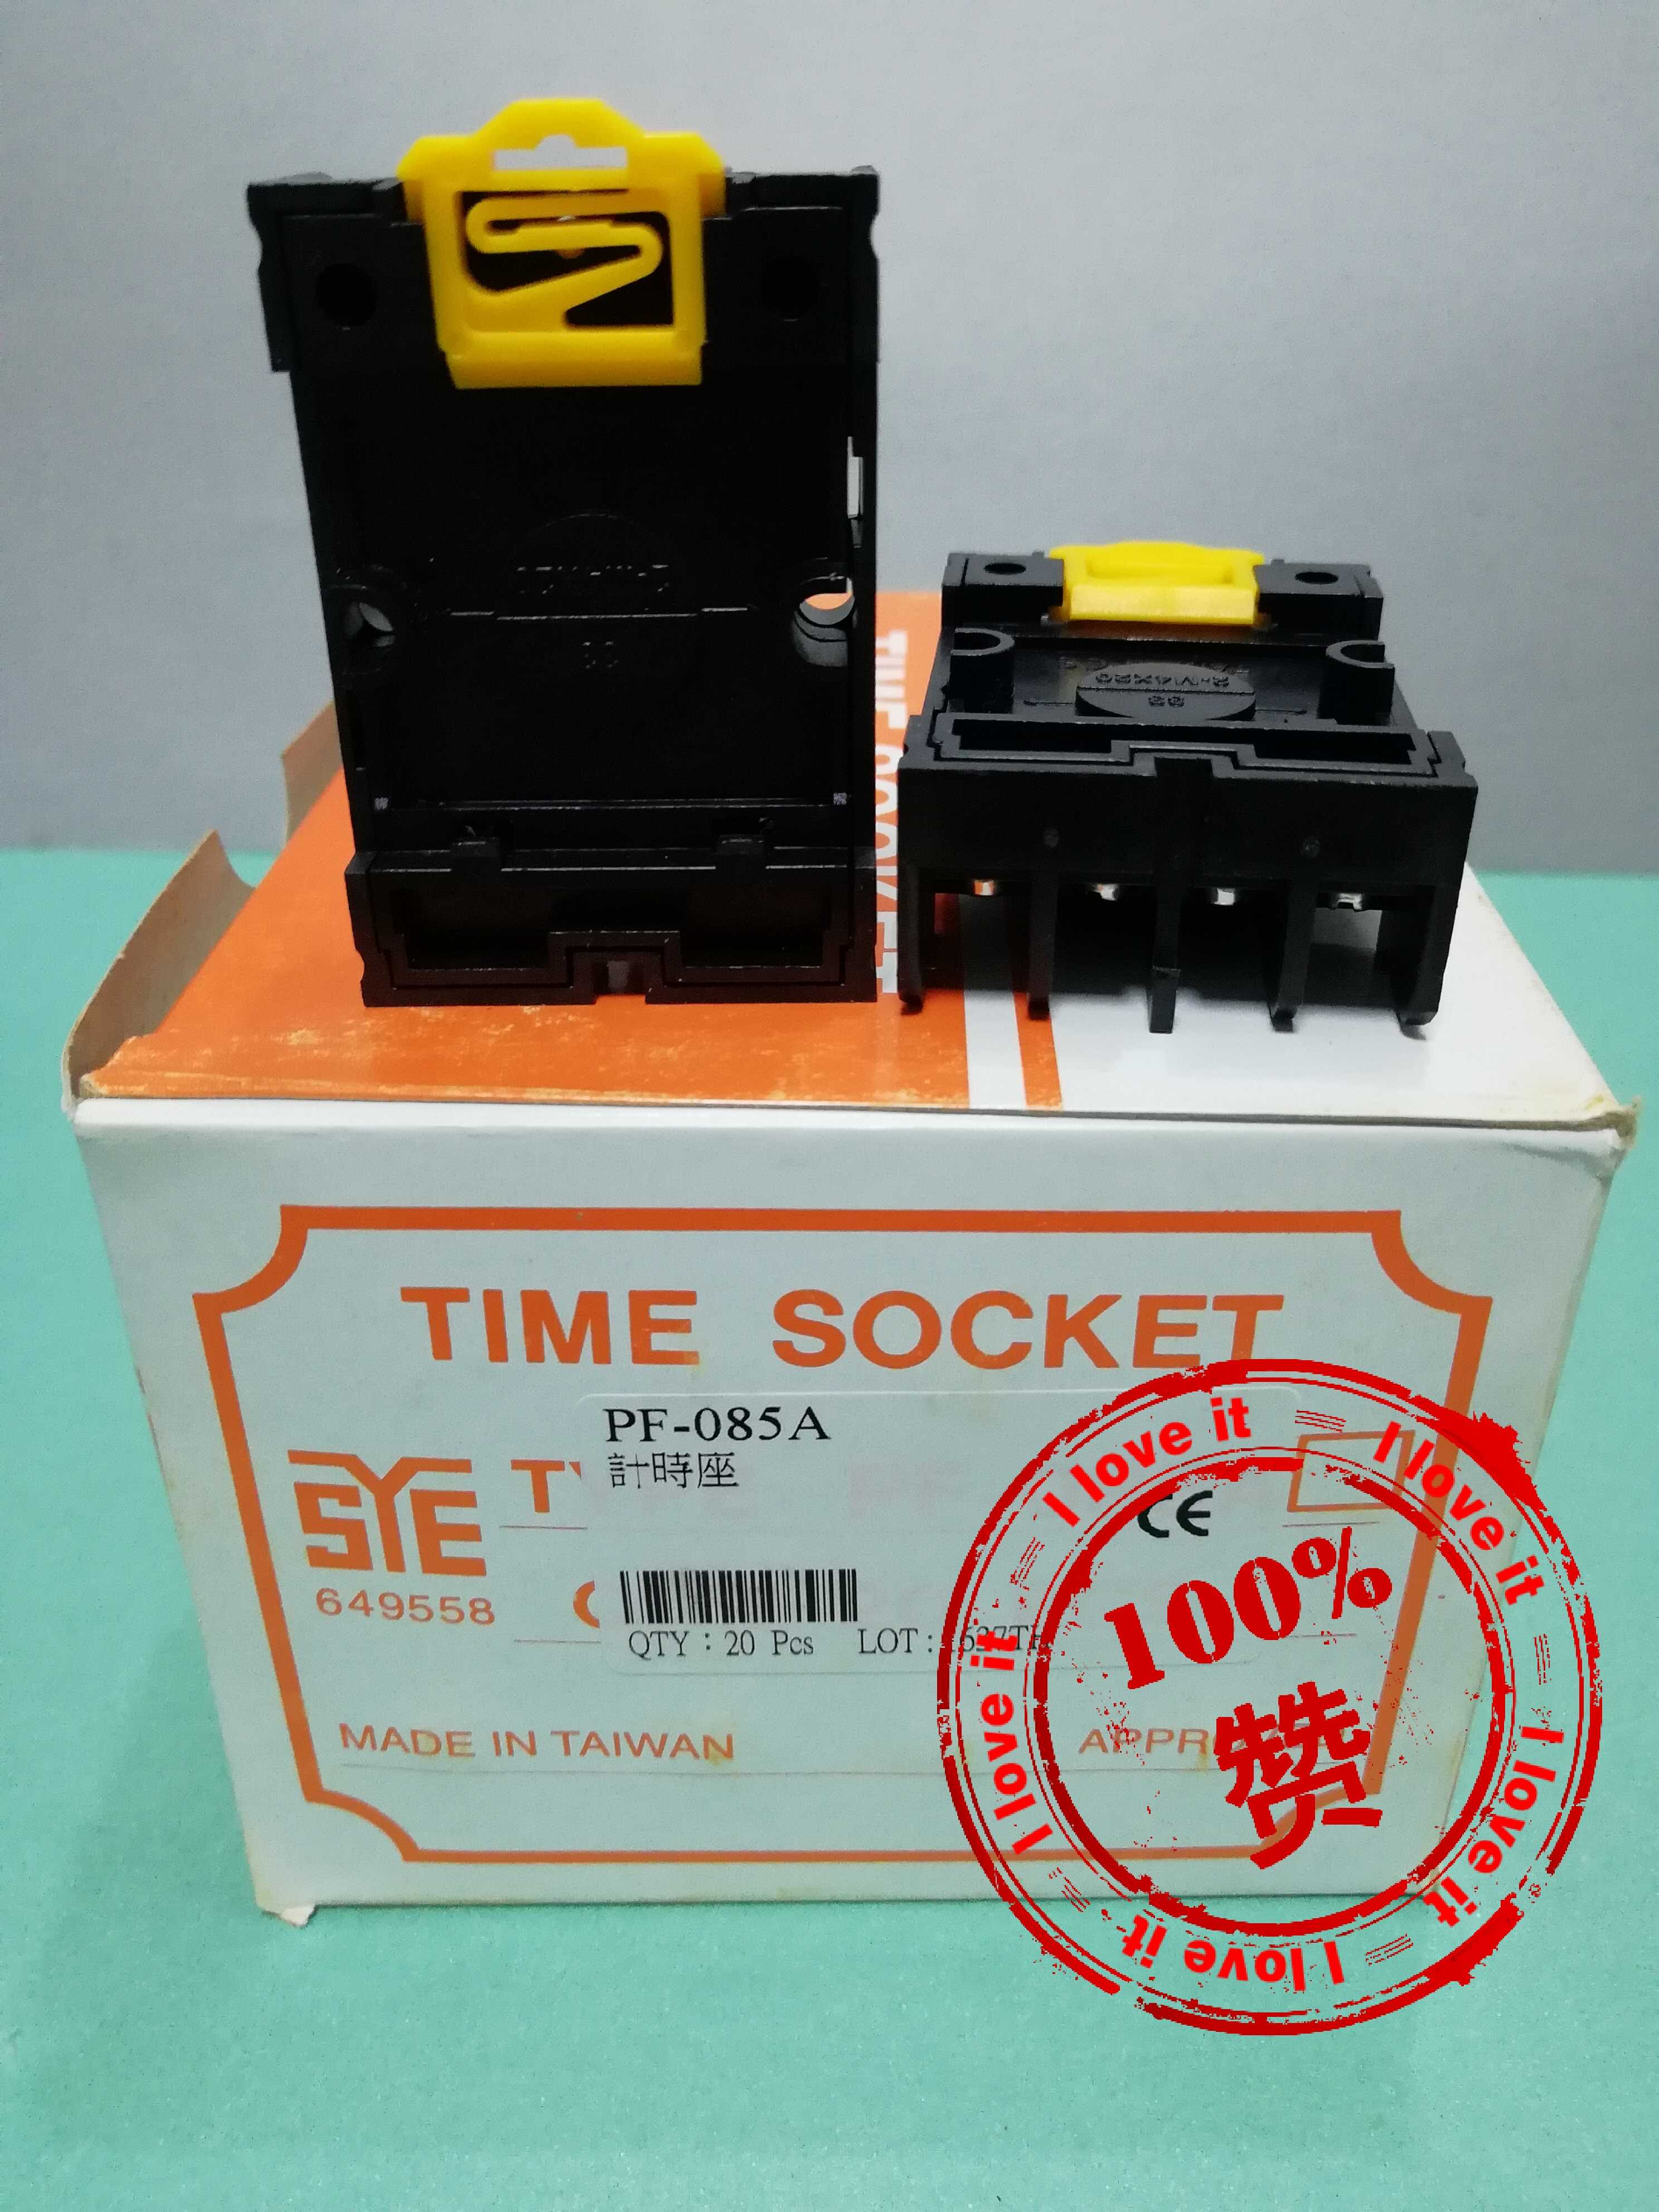 New imported solid state relay base PF-085A pf-85aNew imported solid state relay base PF-085A pf-85a